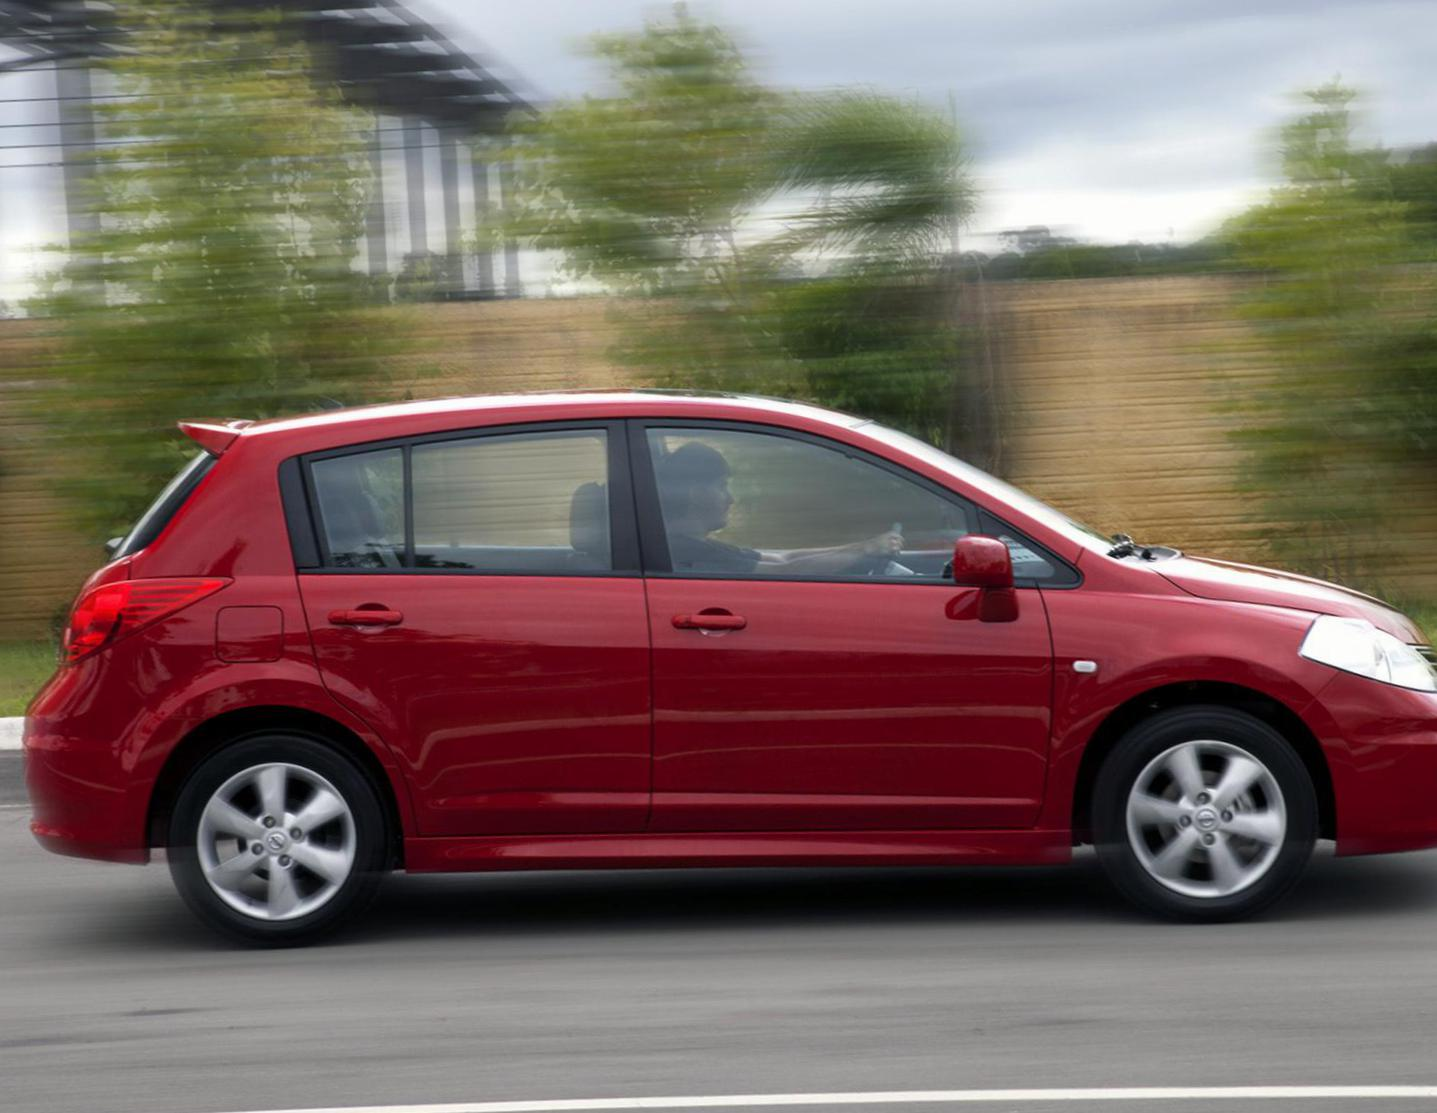 Nissan Tiida Hatchback price sedan